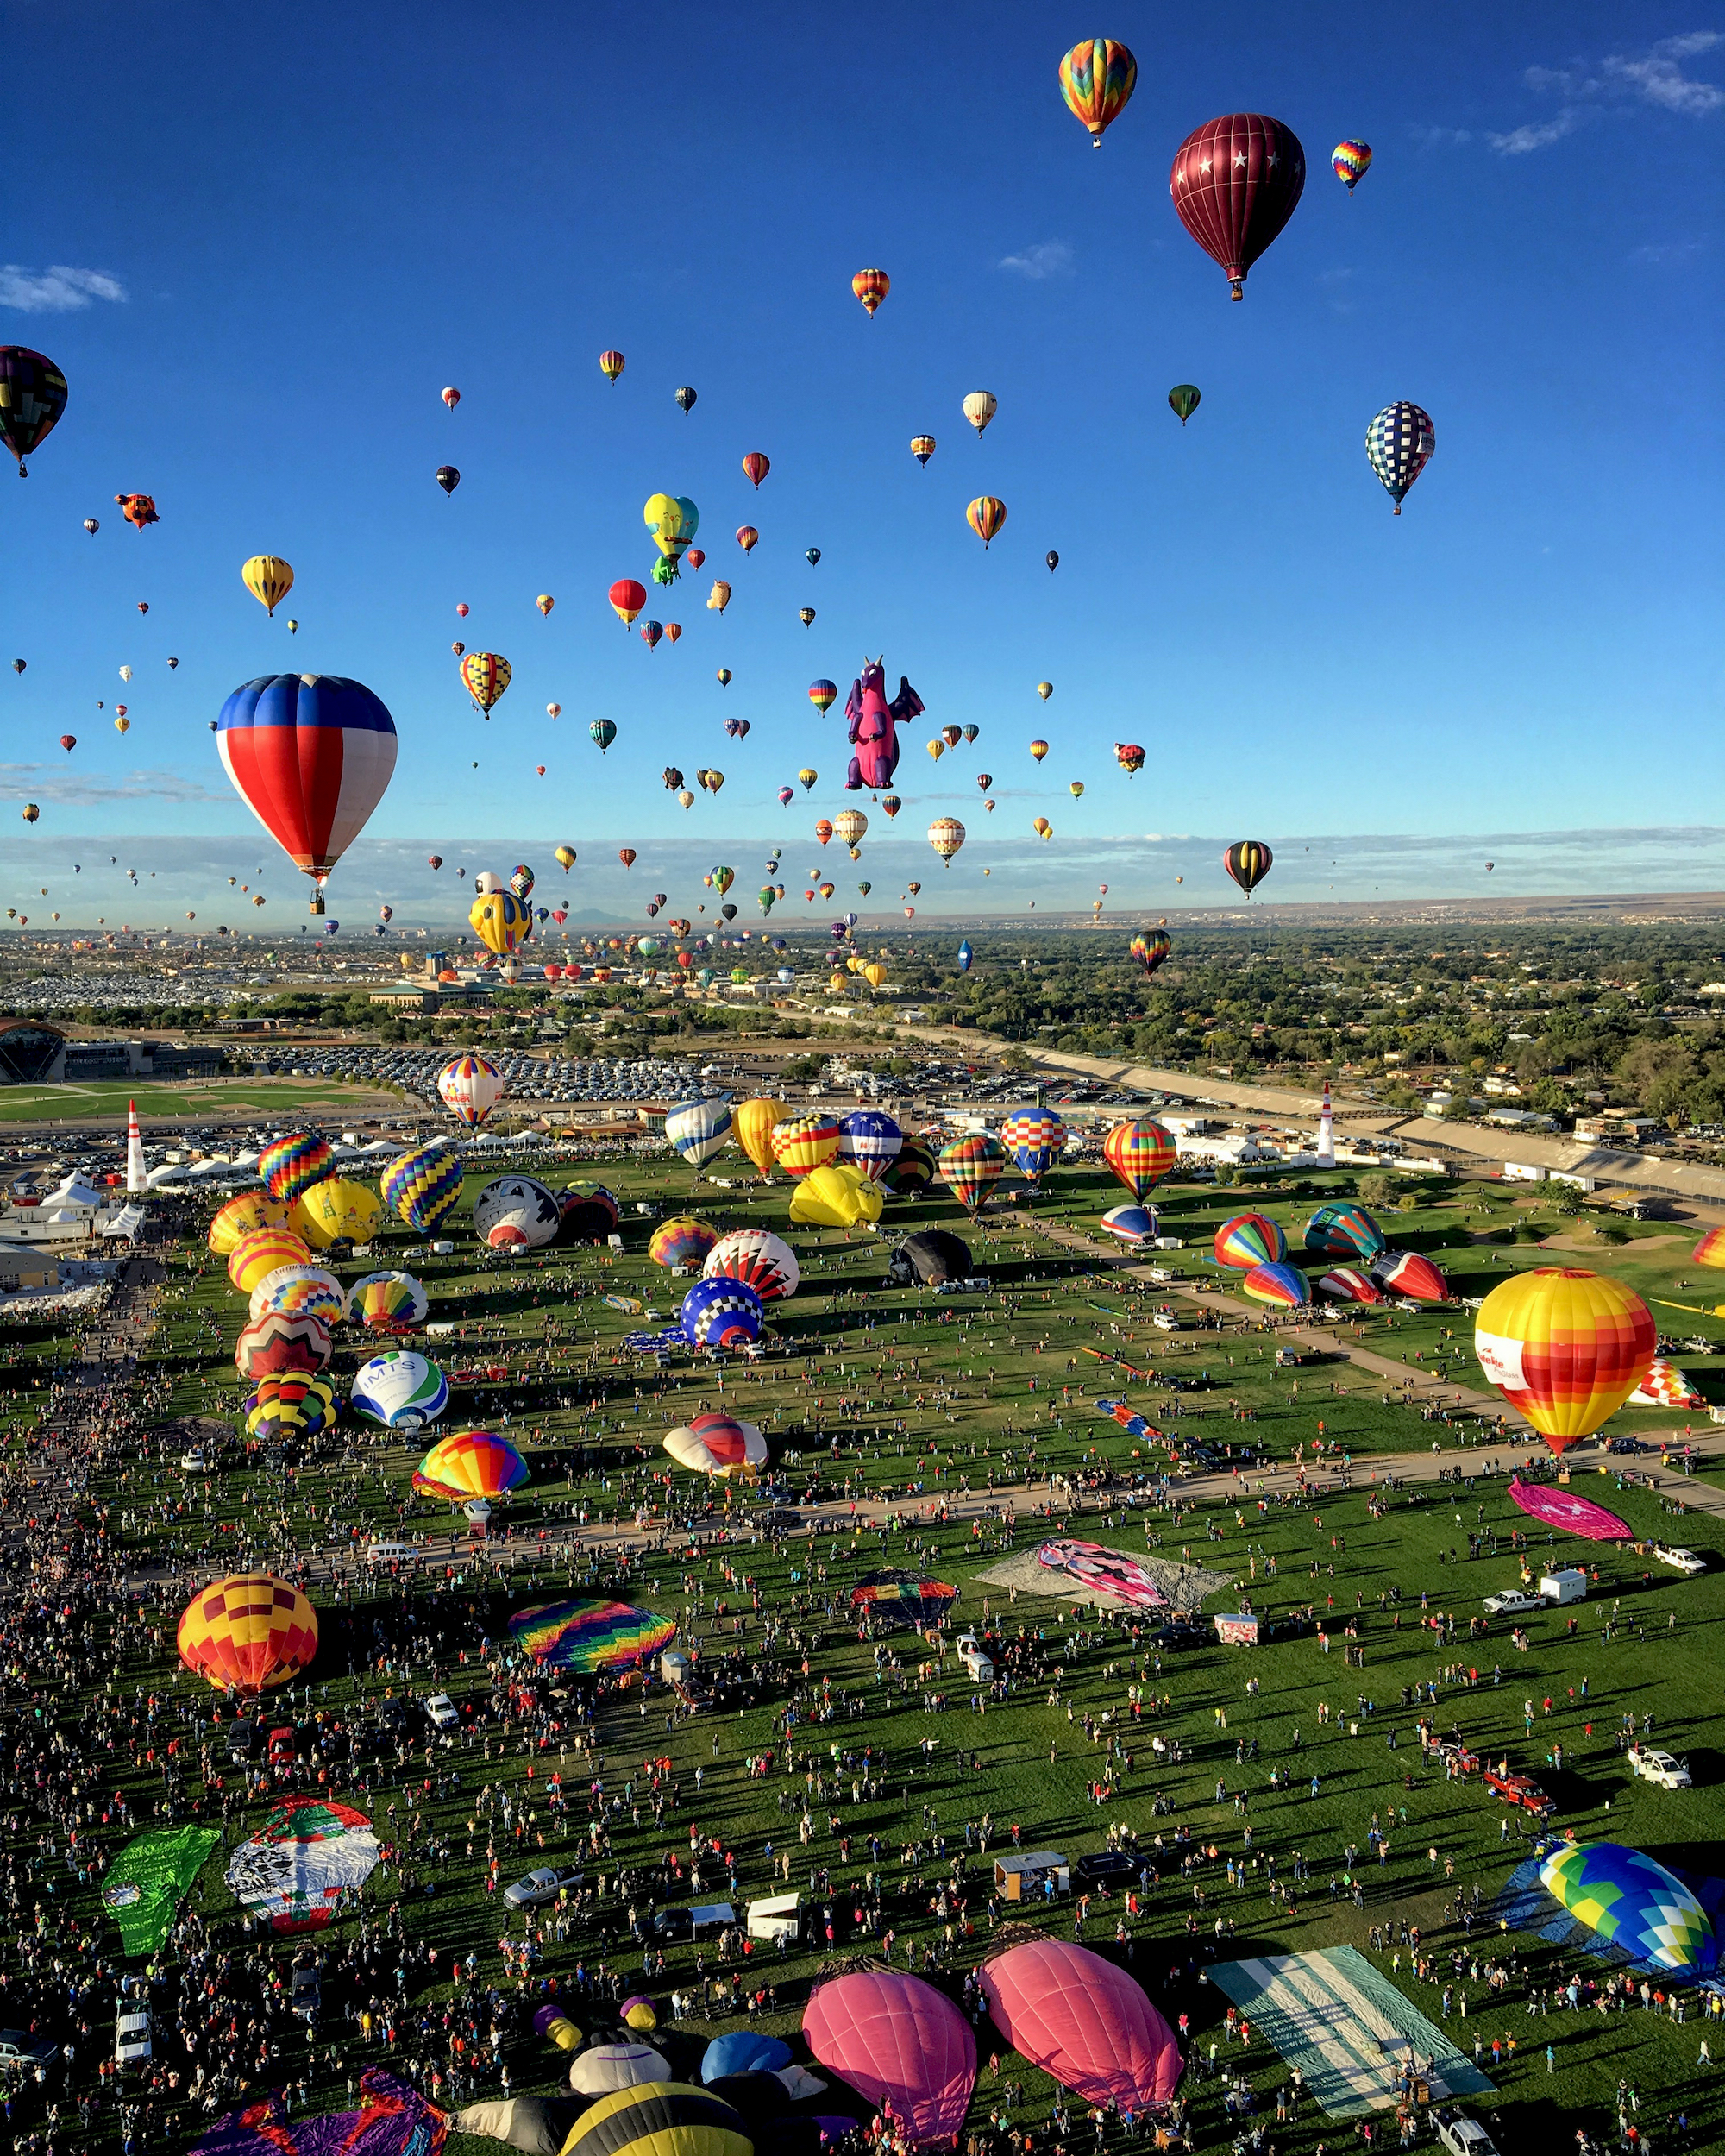 """10/5/2016   Albuquerque International Balloon Fiesta   Albuquerque, New Mexico, USA  35°11′46″N 106°35′51″W    The Albuquerque International Balloon Fiesta is currently underway in Albuquerque, New Mexico, USA. The annual, nine day event is the largest event of its kind in the world with more than 500 balloons. This incredible overview, captured by Alexandra Grumblatt, captures an event known as a """"mass ascension"""" when all participants launch in two waves, filling the sky with hundreds of balloons at once."""